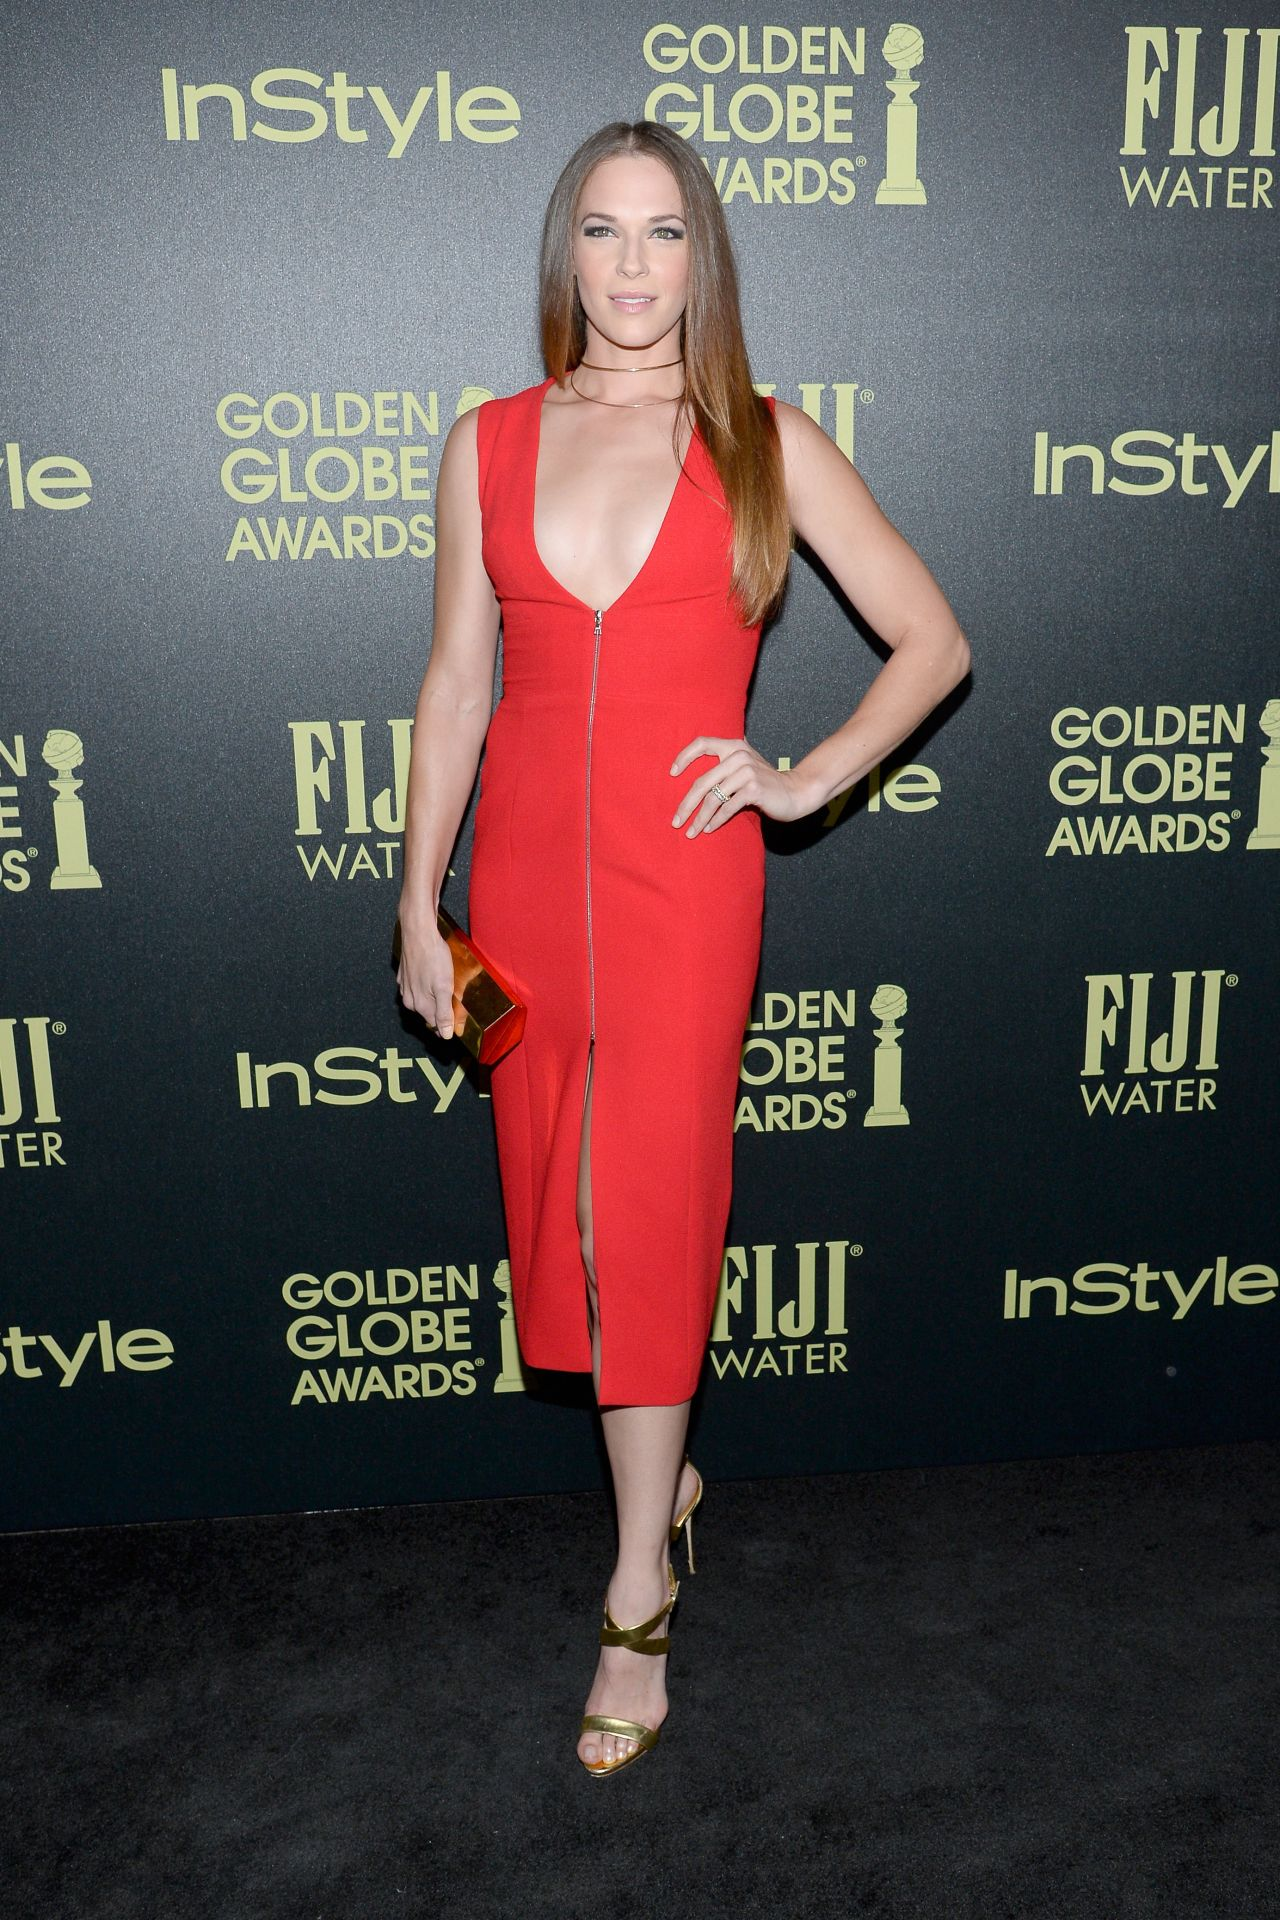 http://celebmafia.com/wp-content/uploads/2015/11/amanda-righetti-hfpa-and-instyle-celebrate-the-2016-golden-globe-award-season-in-west-hollywood_2.jpg